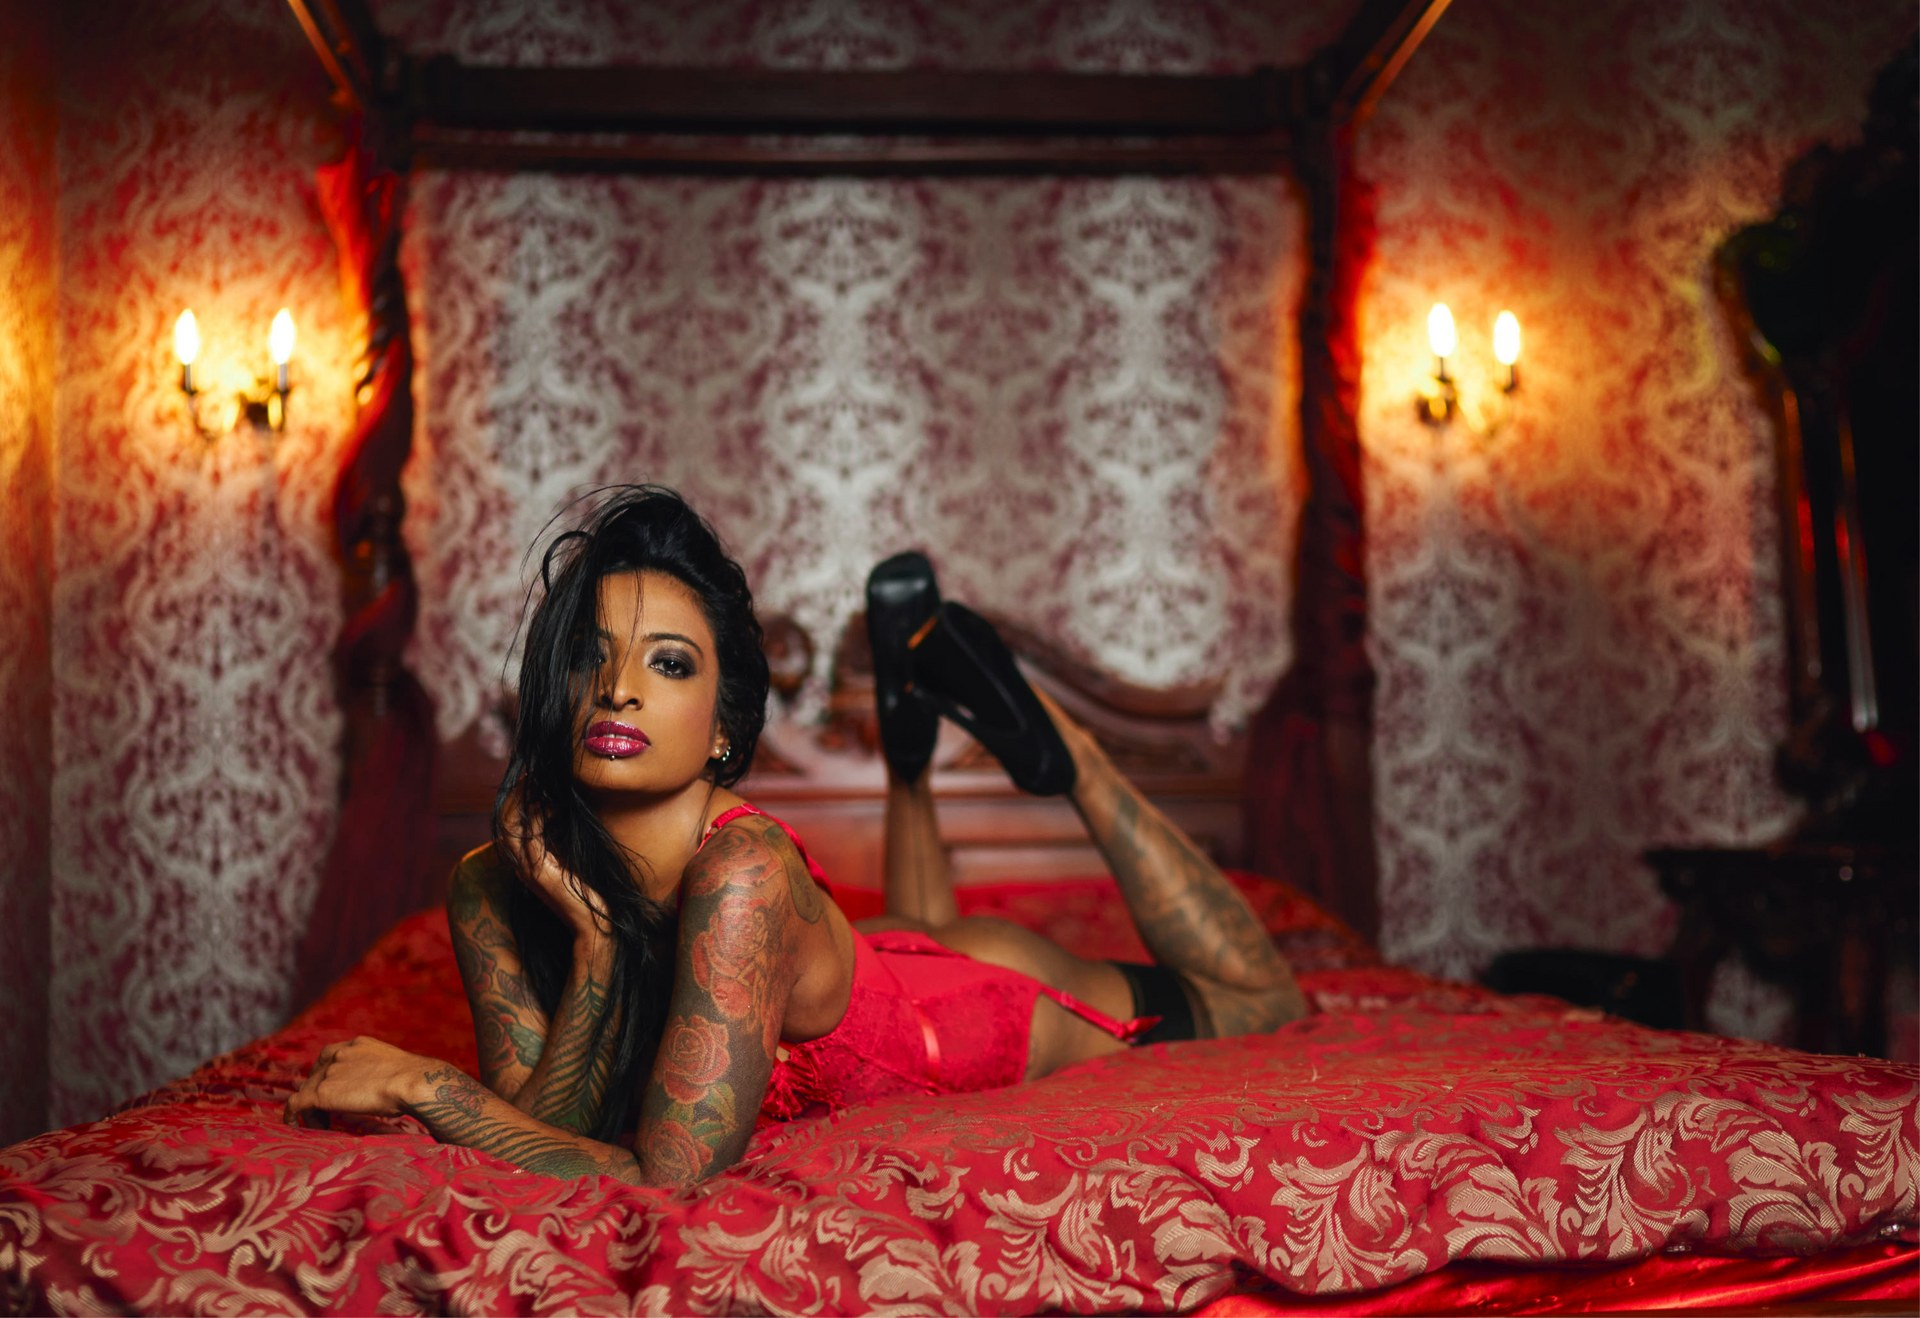 'Red and Black Boudoir'